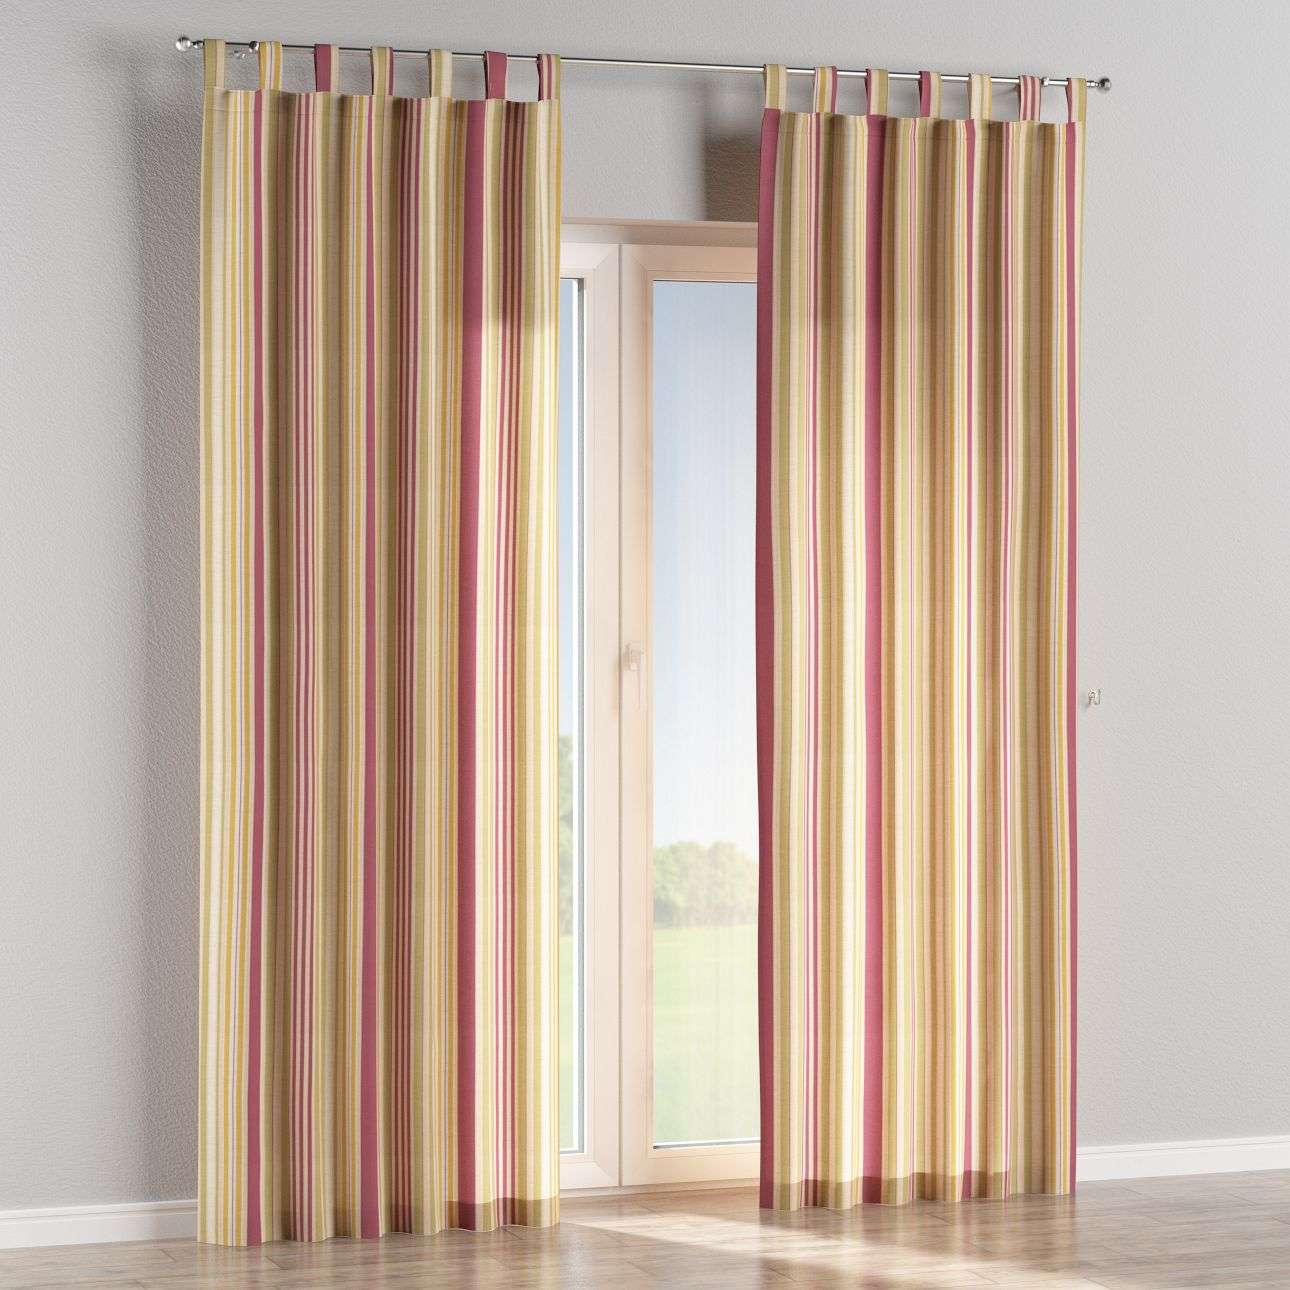 Tab top curtains 130 × 260 cm (51 × 102 inch) in collection Londres, fabric: 122-09